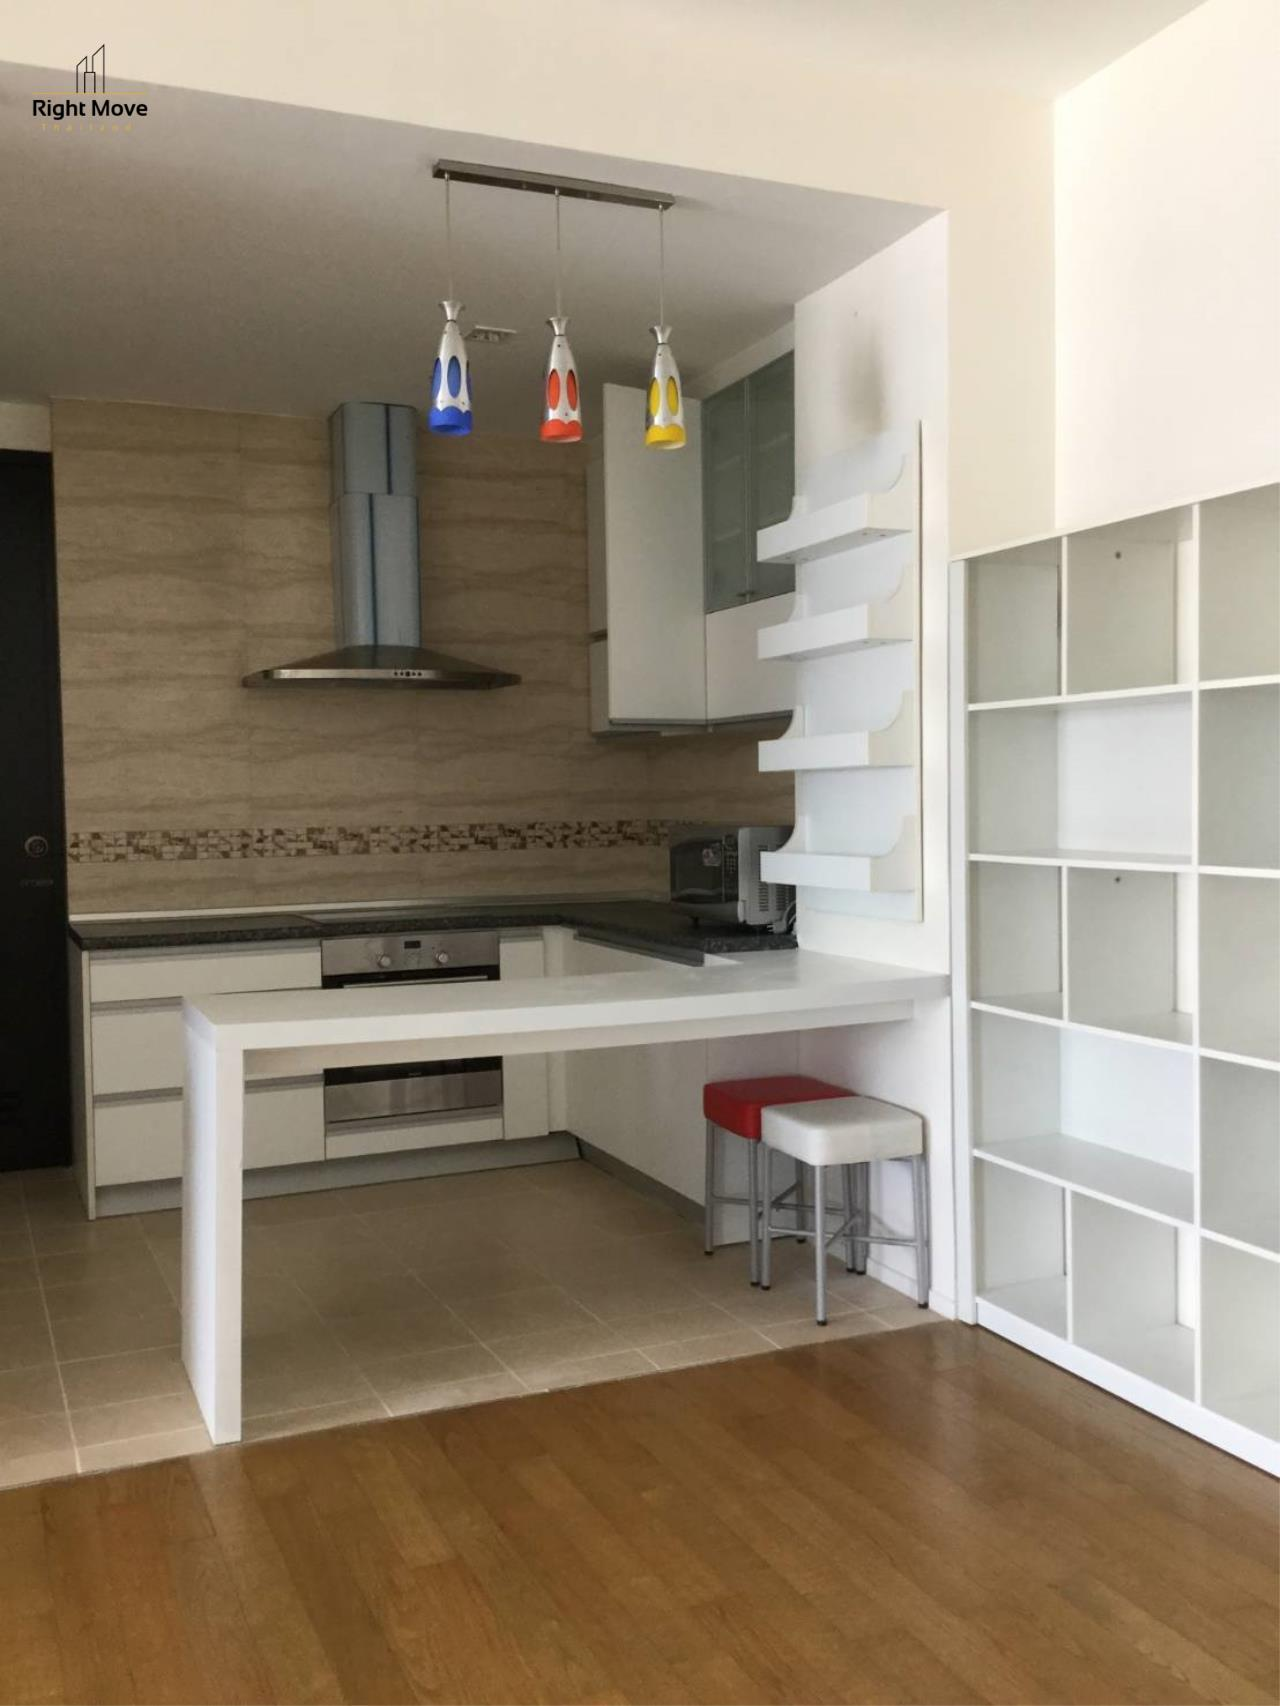 Right Move Thailand Agency's CA5486 Madison Condominium For Rent 90,000 THB - 3 Bedrooms - 160 sqm. 5